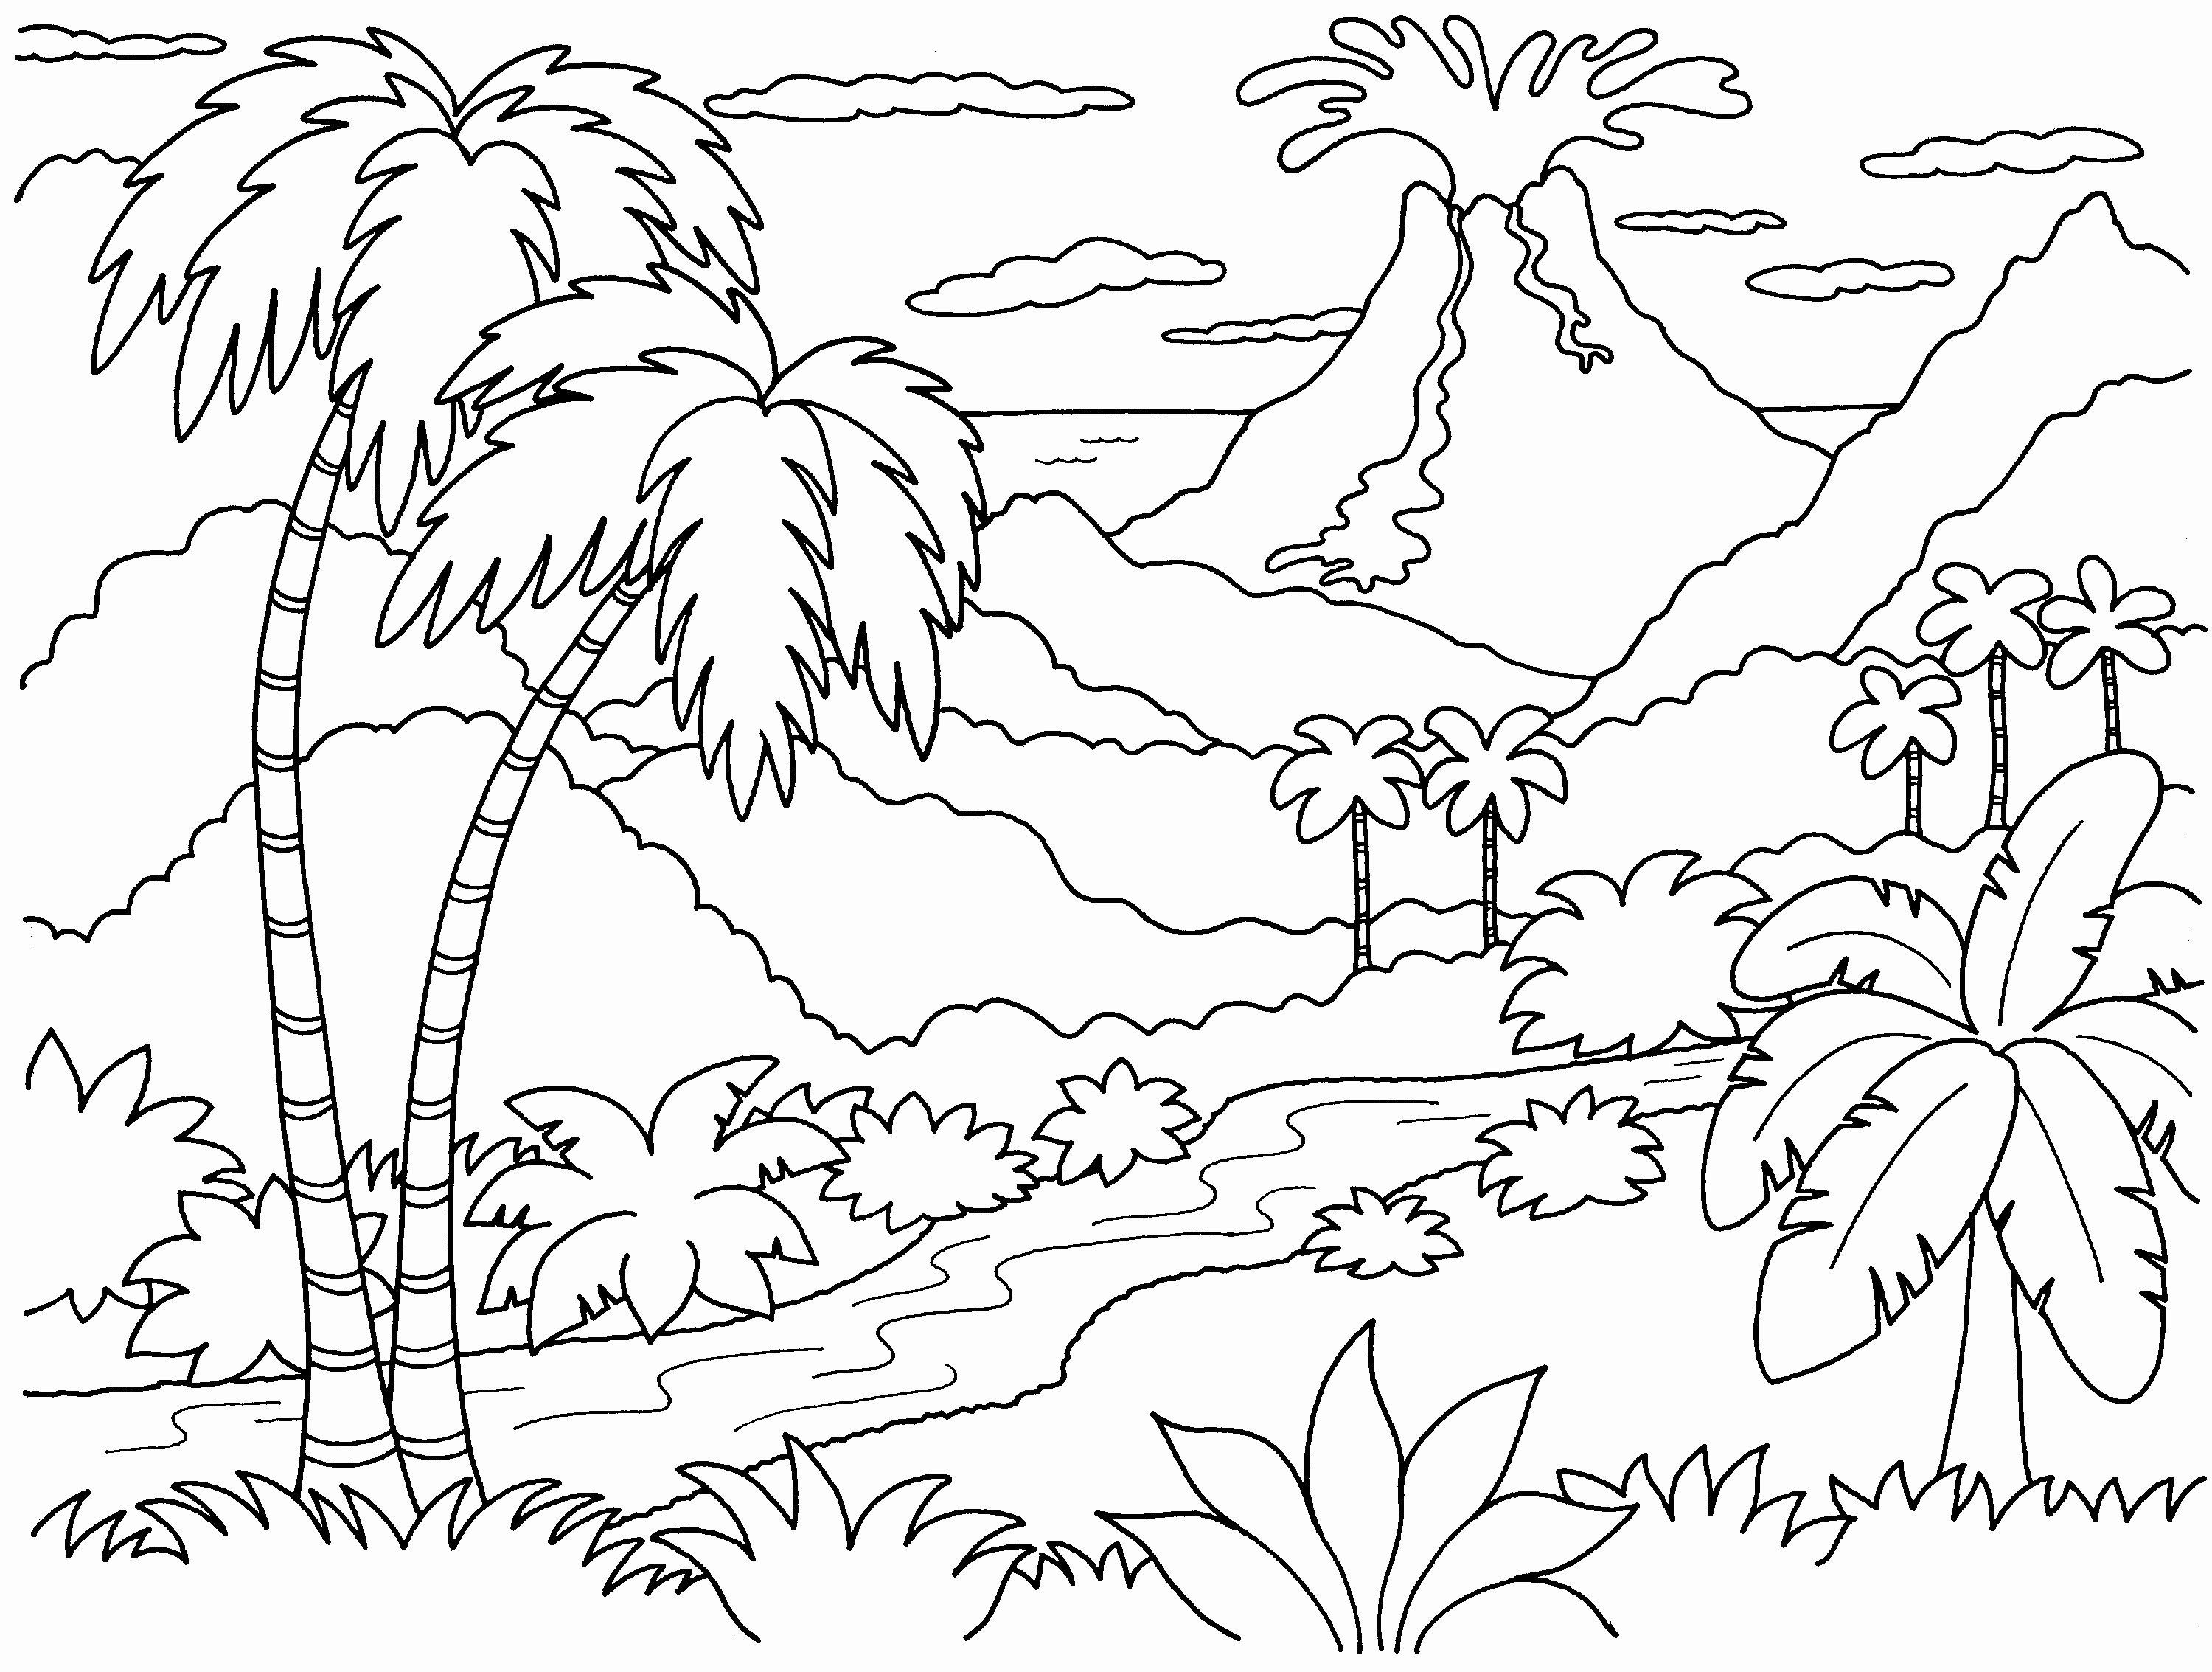 5b4e97515917ef46a03d87453547fb8c » Nature Themed Coloring Pages